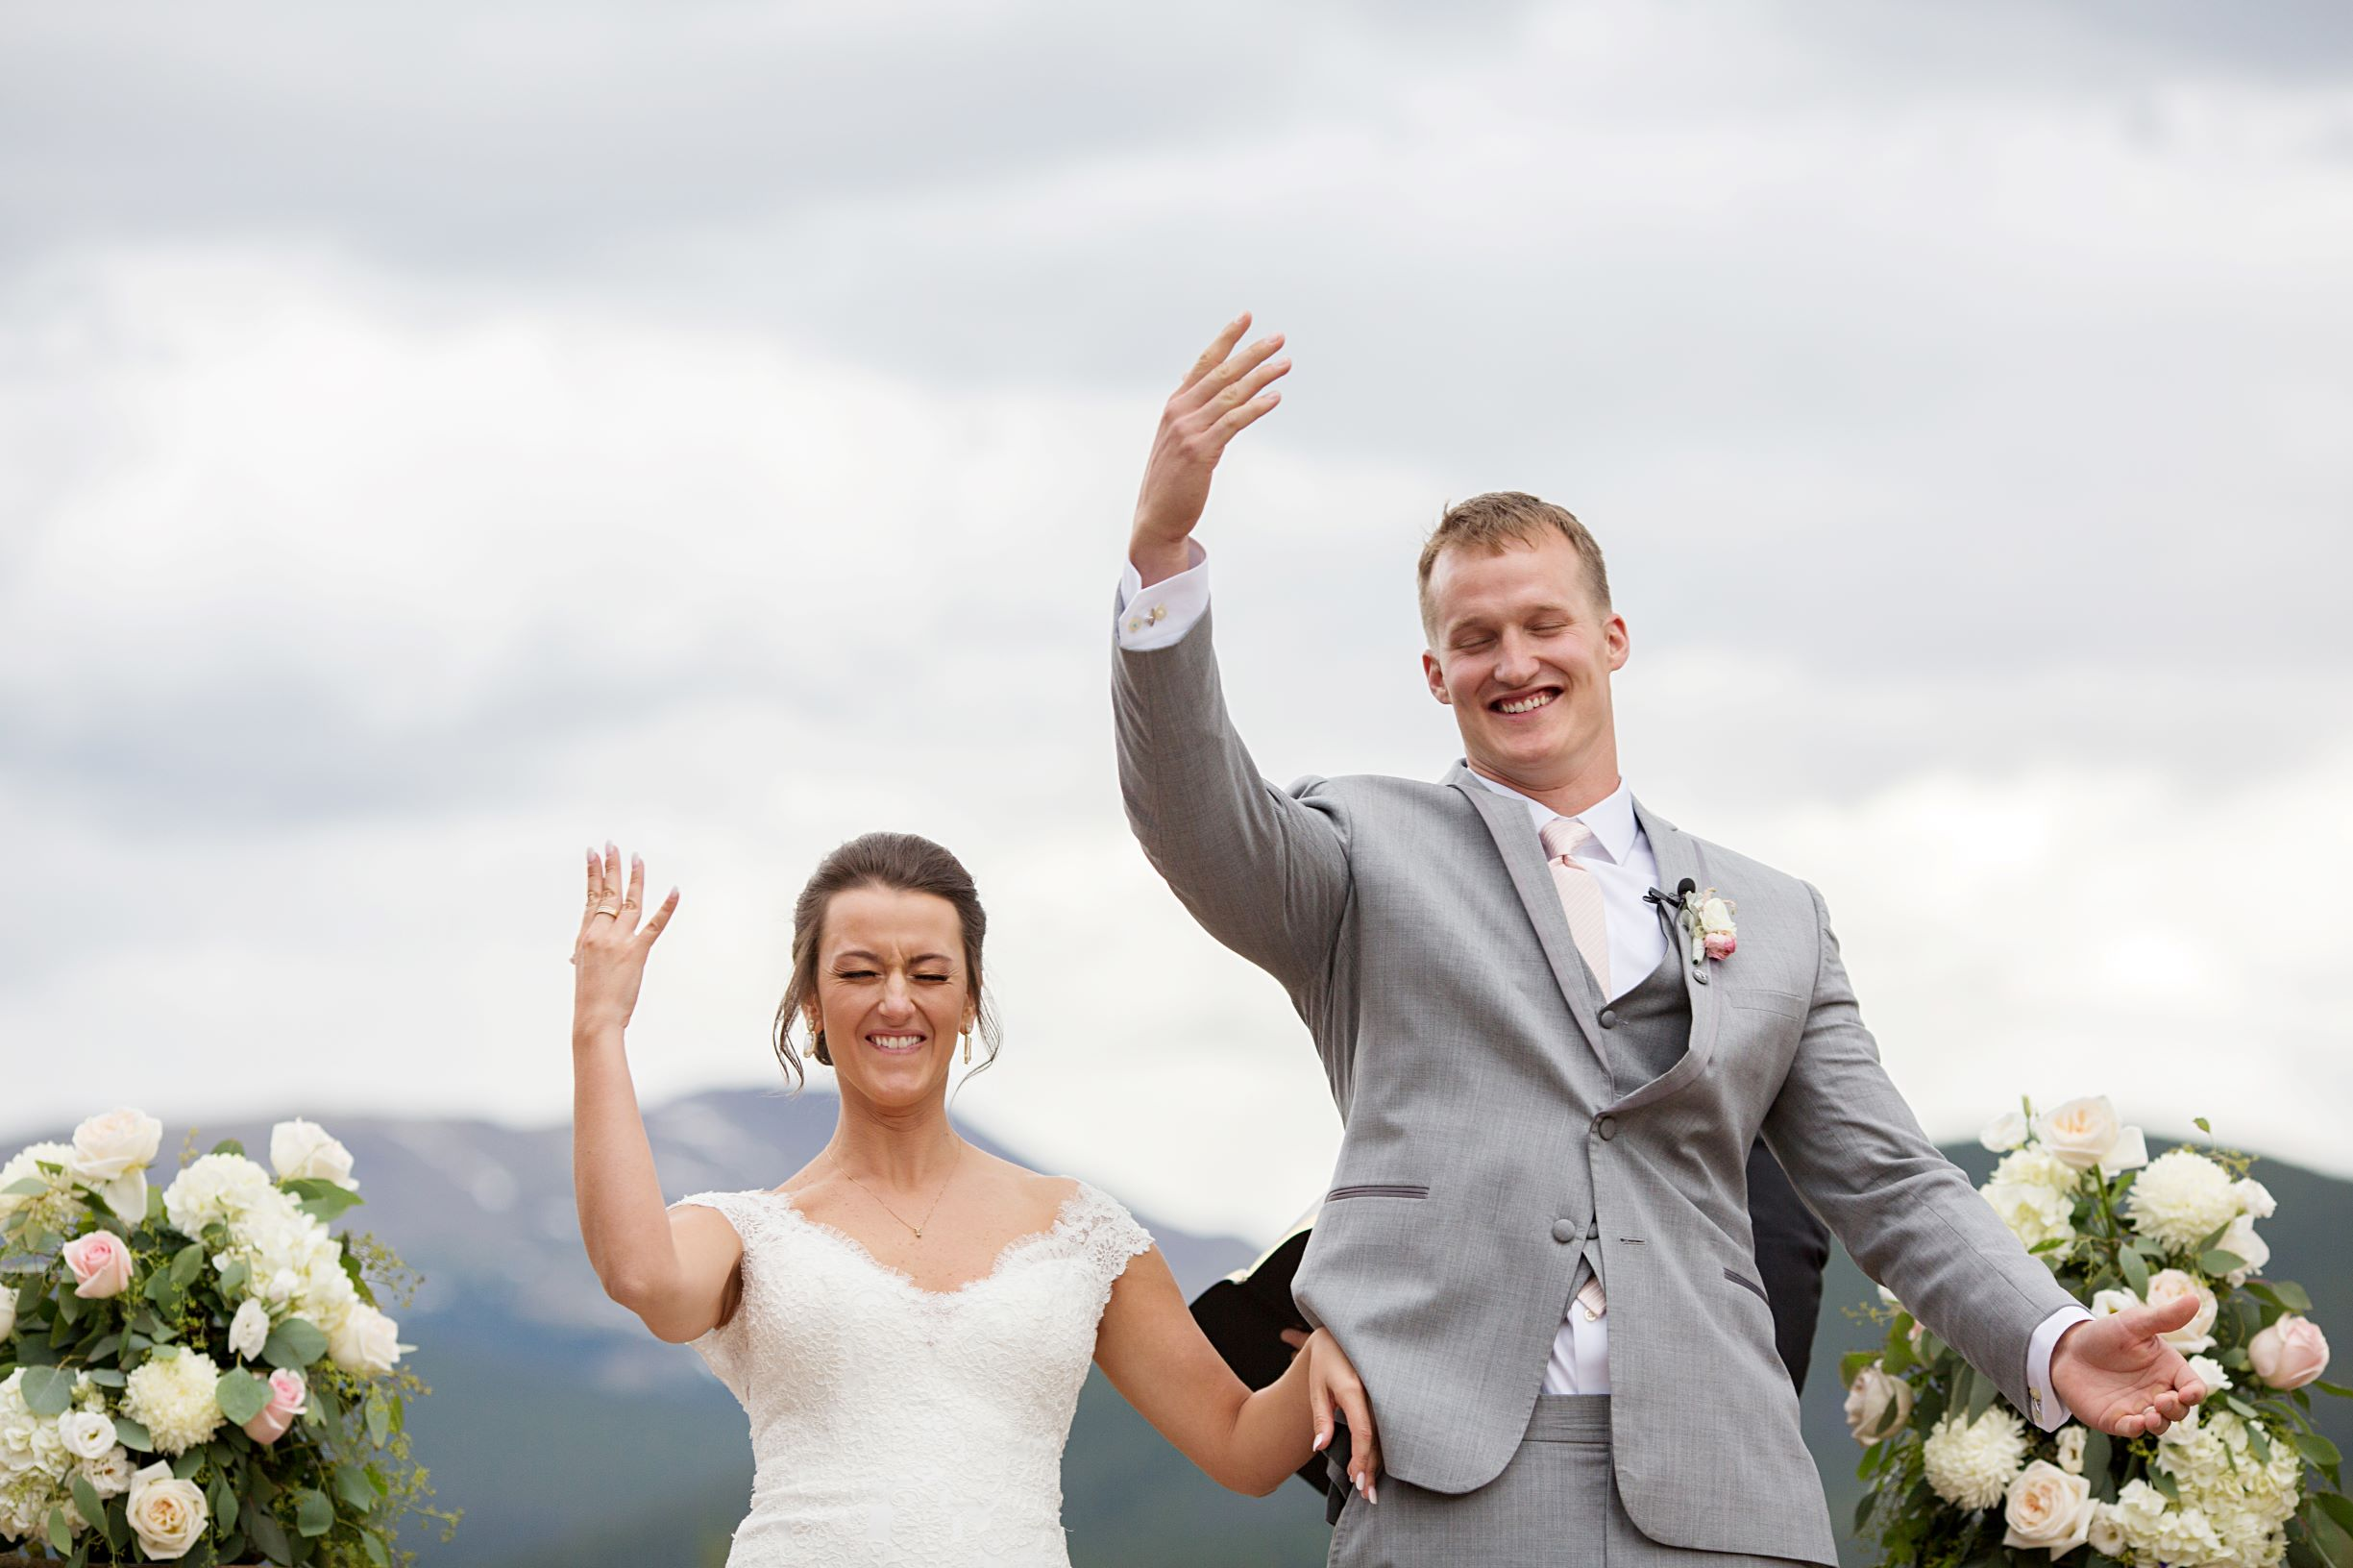 bride and groom tossing keys during unity ceremony